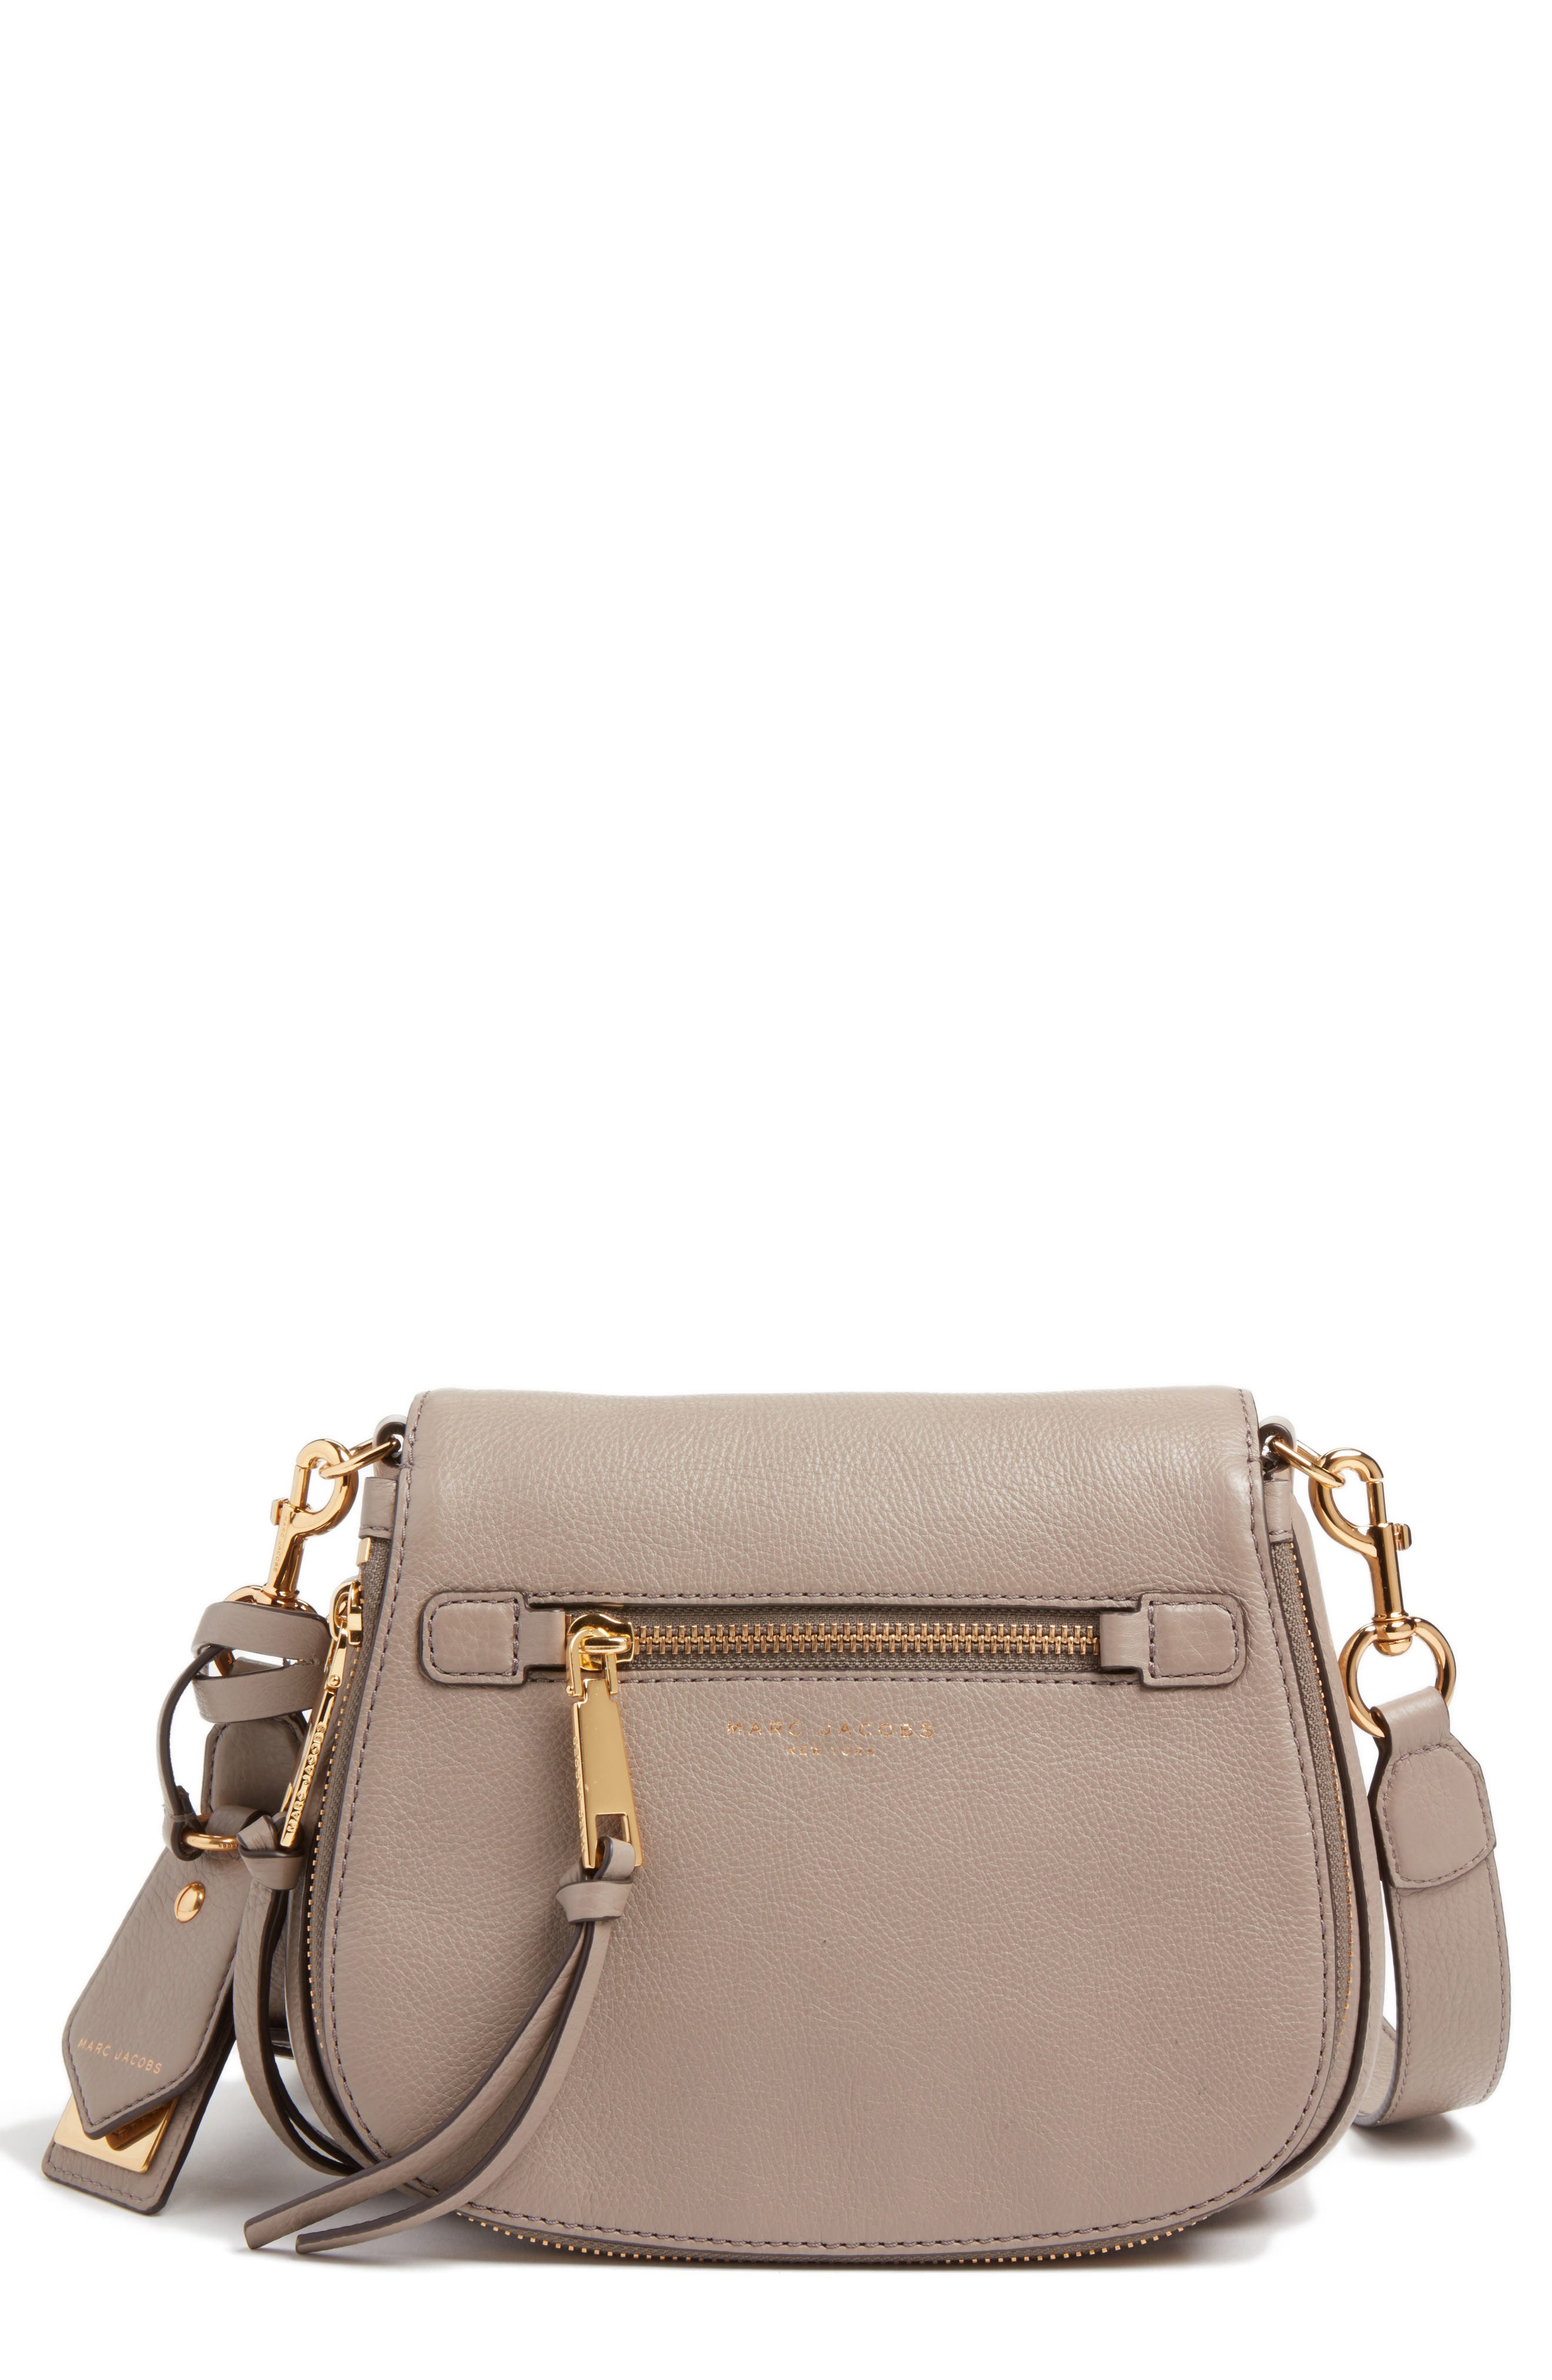 Small Recruit Nomad Pebbled Leather Crossbody Bag,                             Alternate thumbnail 20, color,